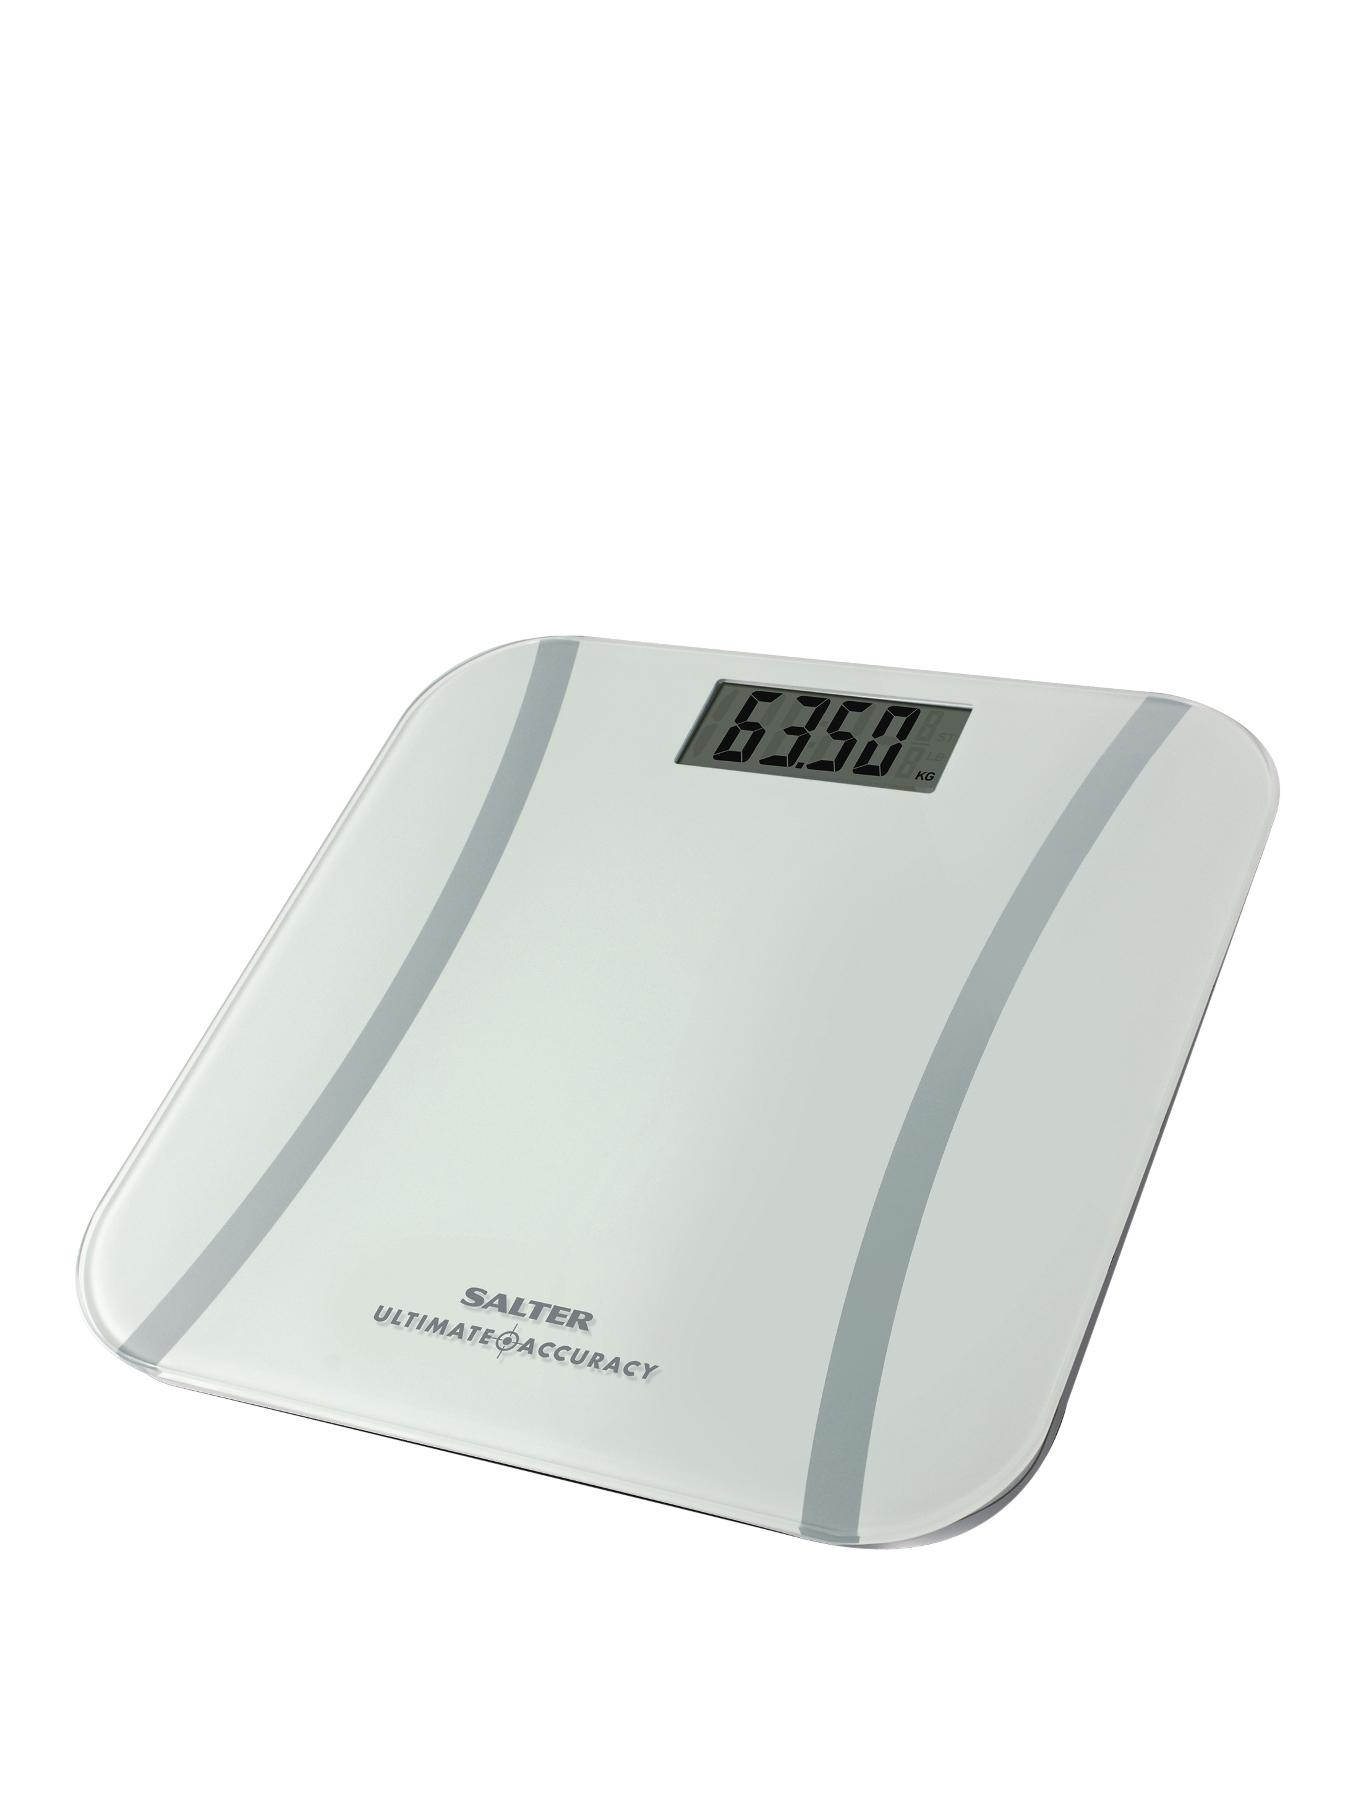 Ultimate Accuracy Electronic Scale